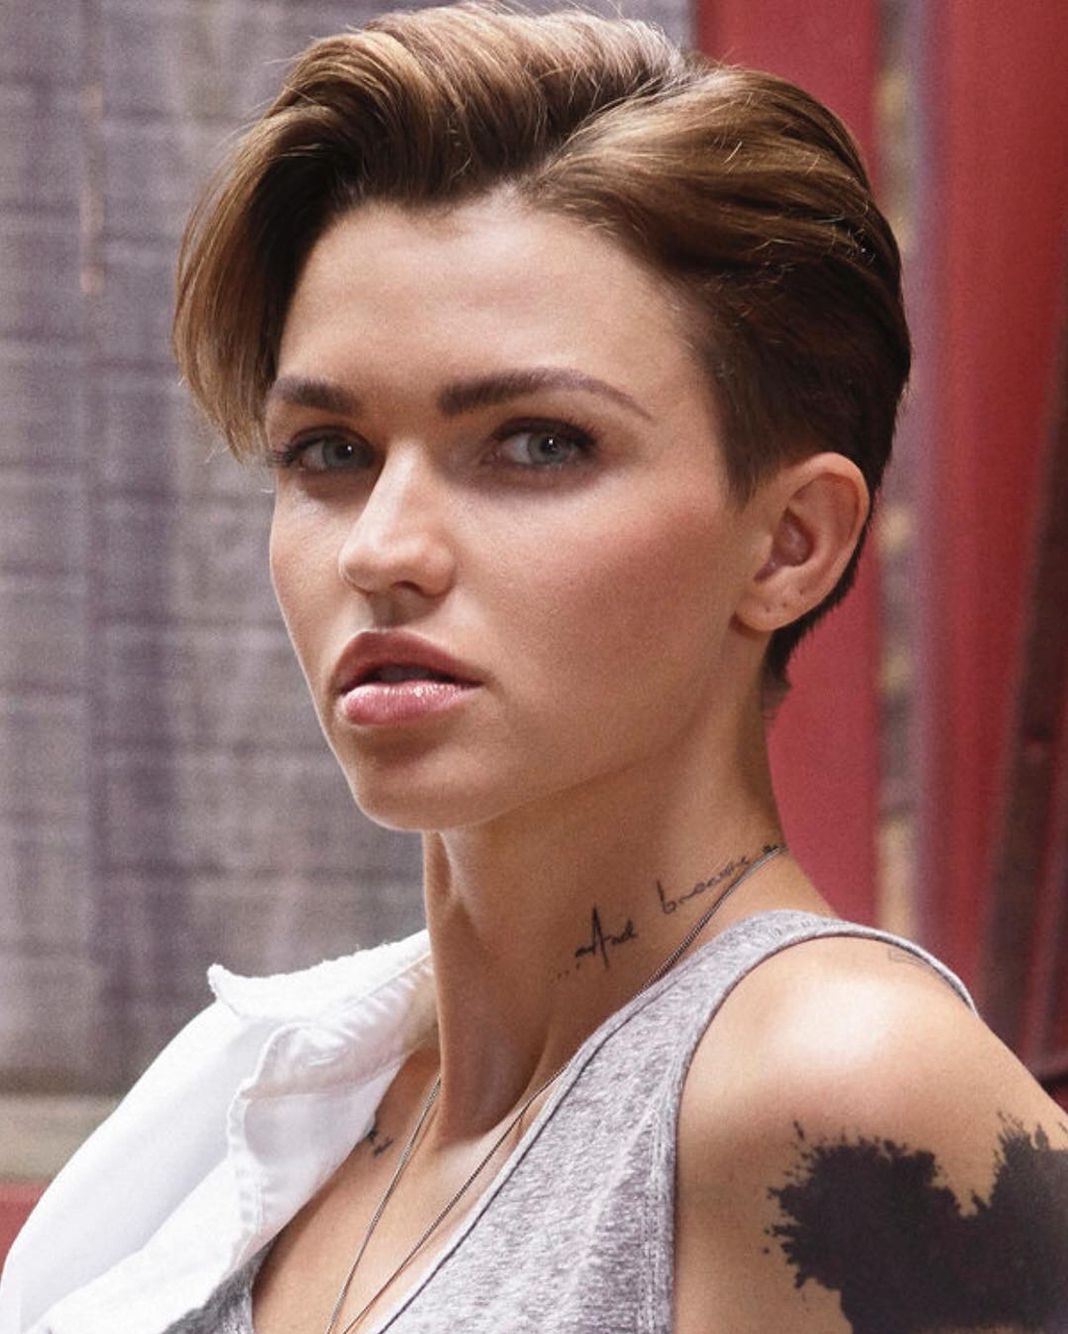 Ruby Rose Www Facebook Com Ilovehotandcutecelebrities Ruby Rose Hair Ruby Rose Haircut Rose Hair